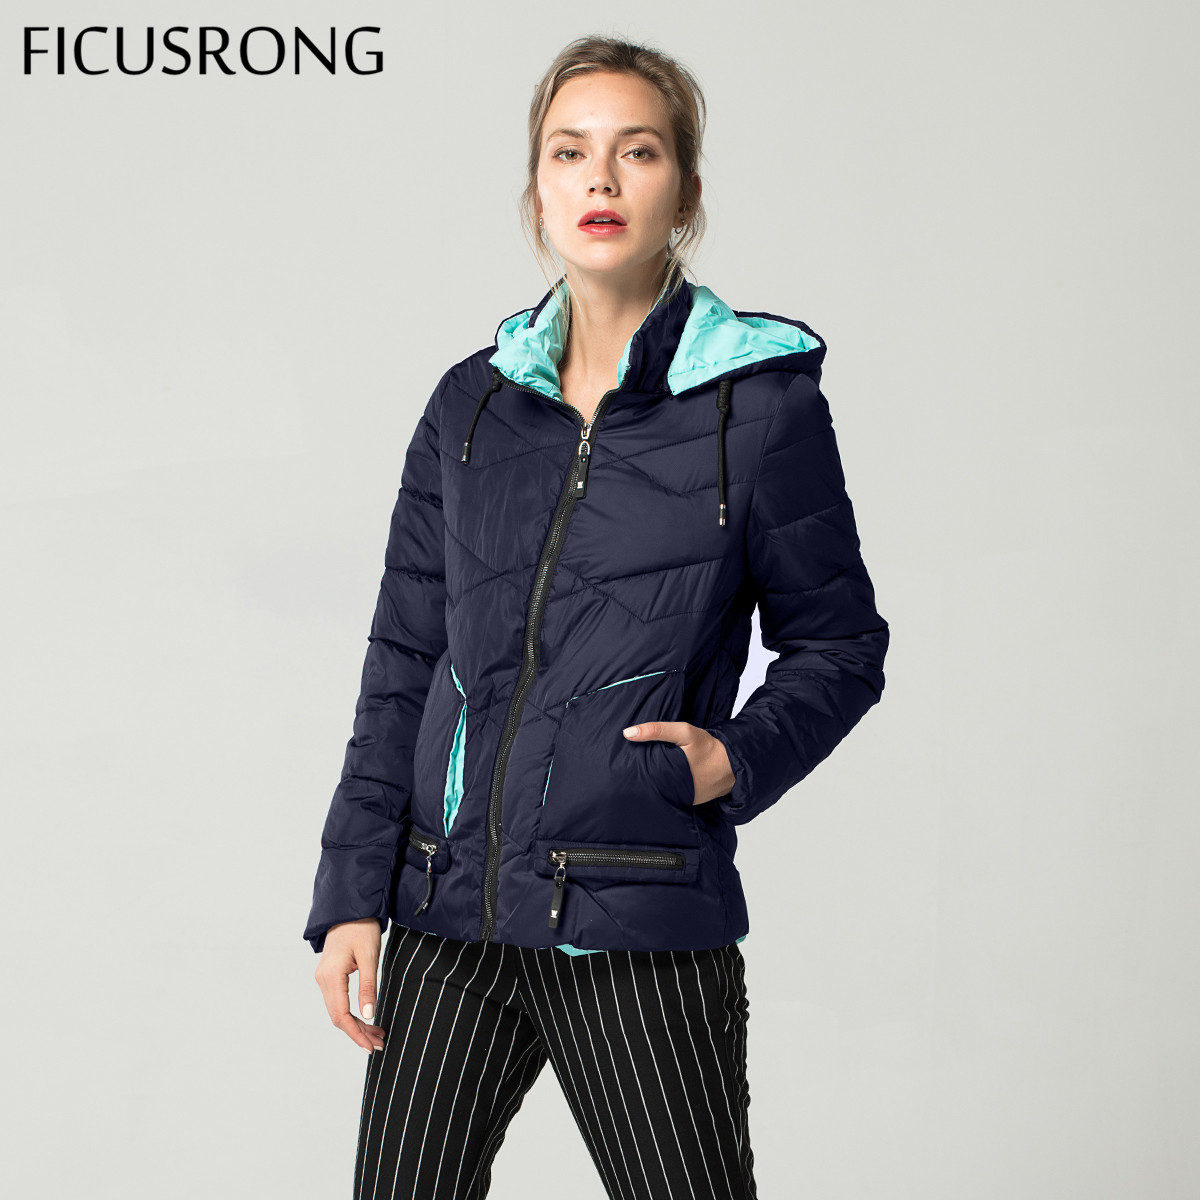 New 2019 Fashion Slim Cotton Padded Jacket Female Autumn Winter Jacket Women Down   Parkas   Outerwear Womens Hooded Coats FICUSRONG